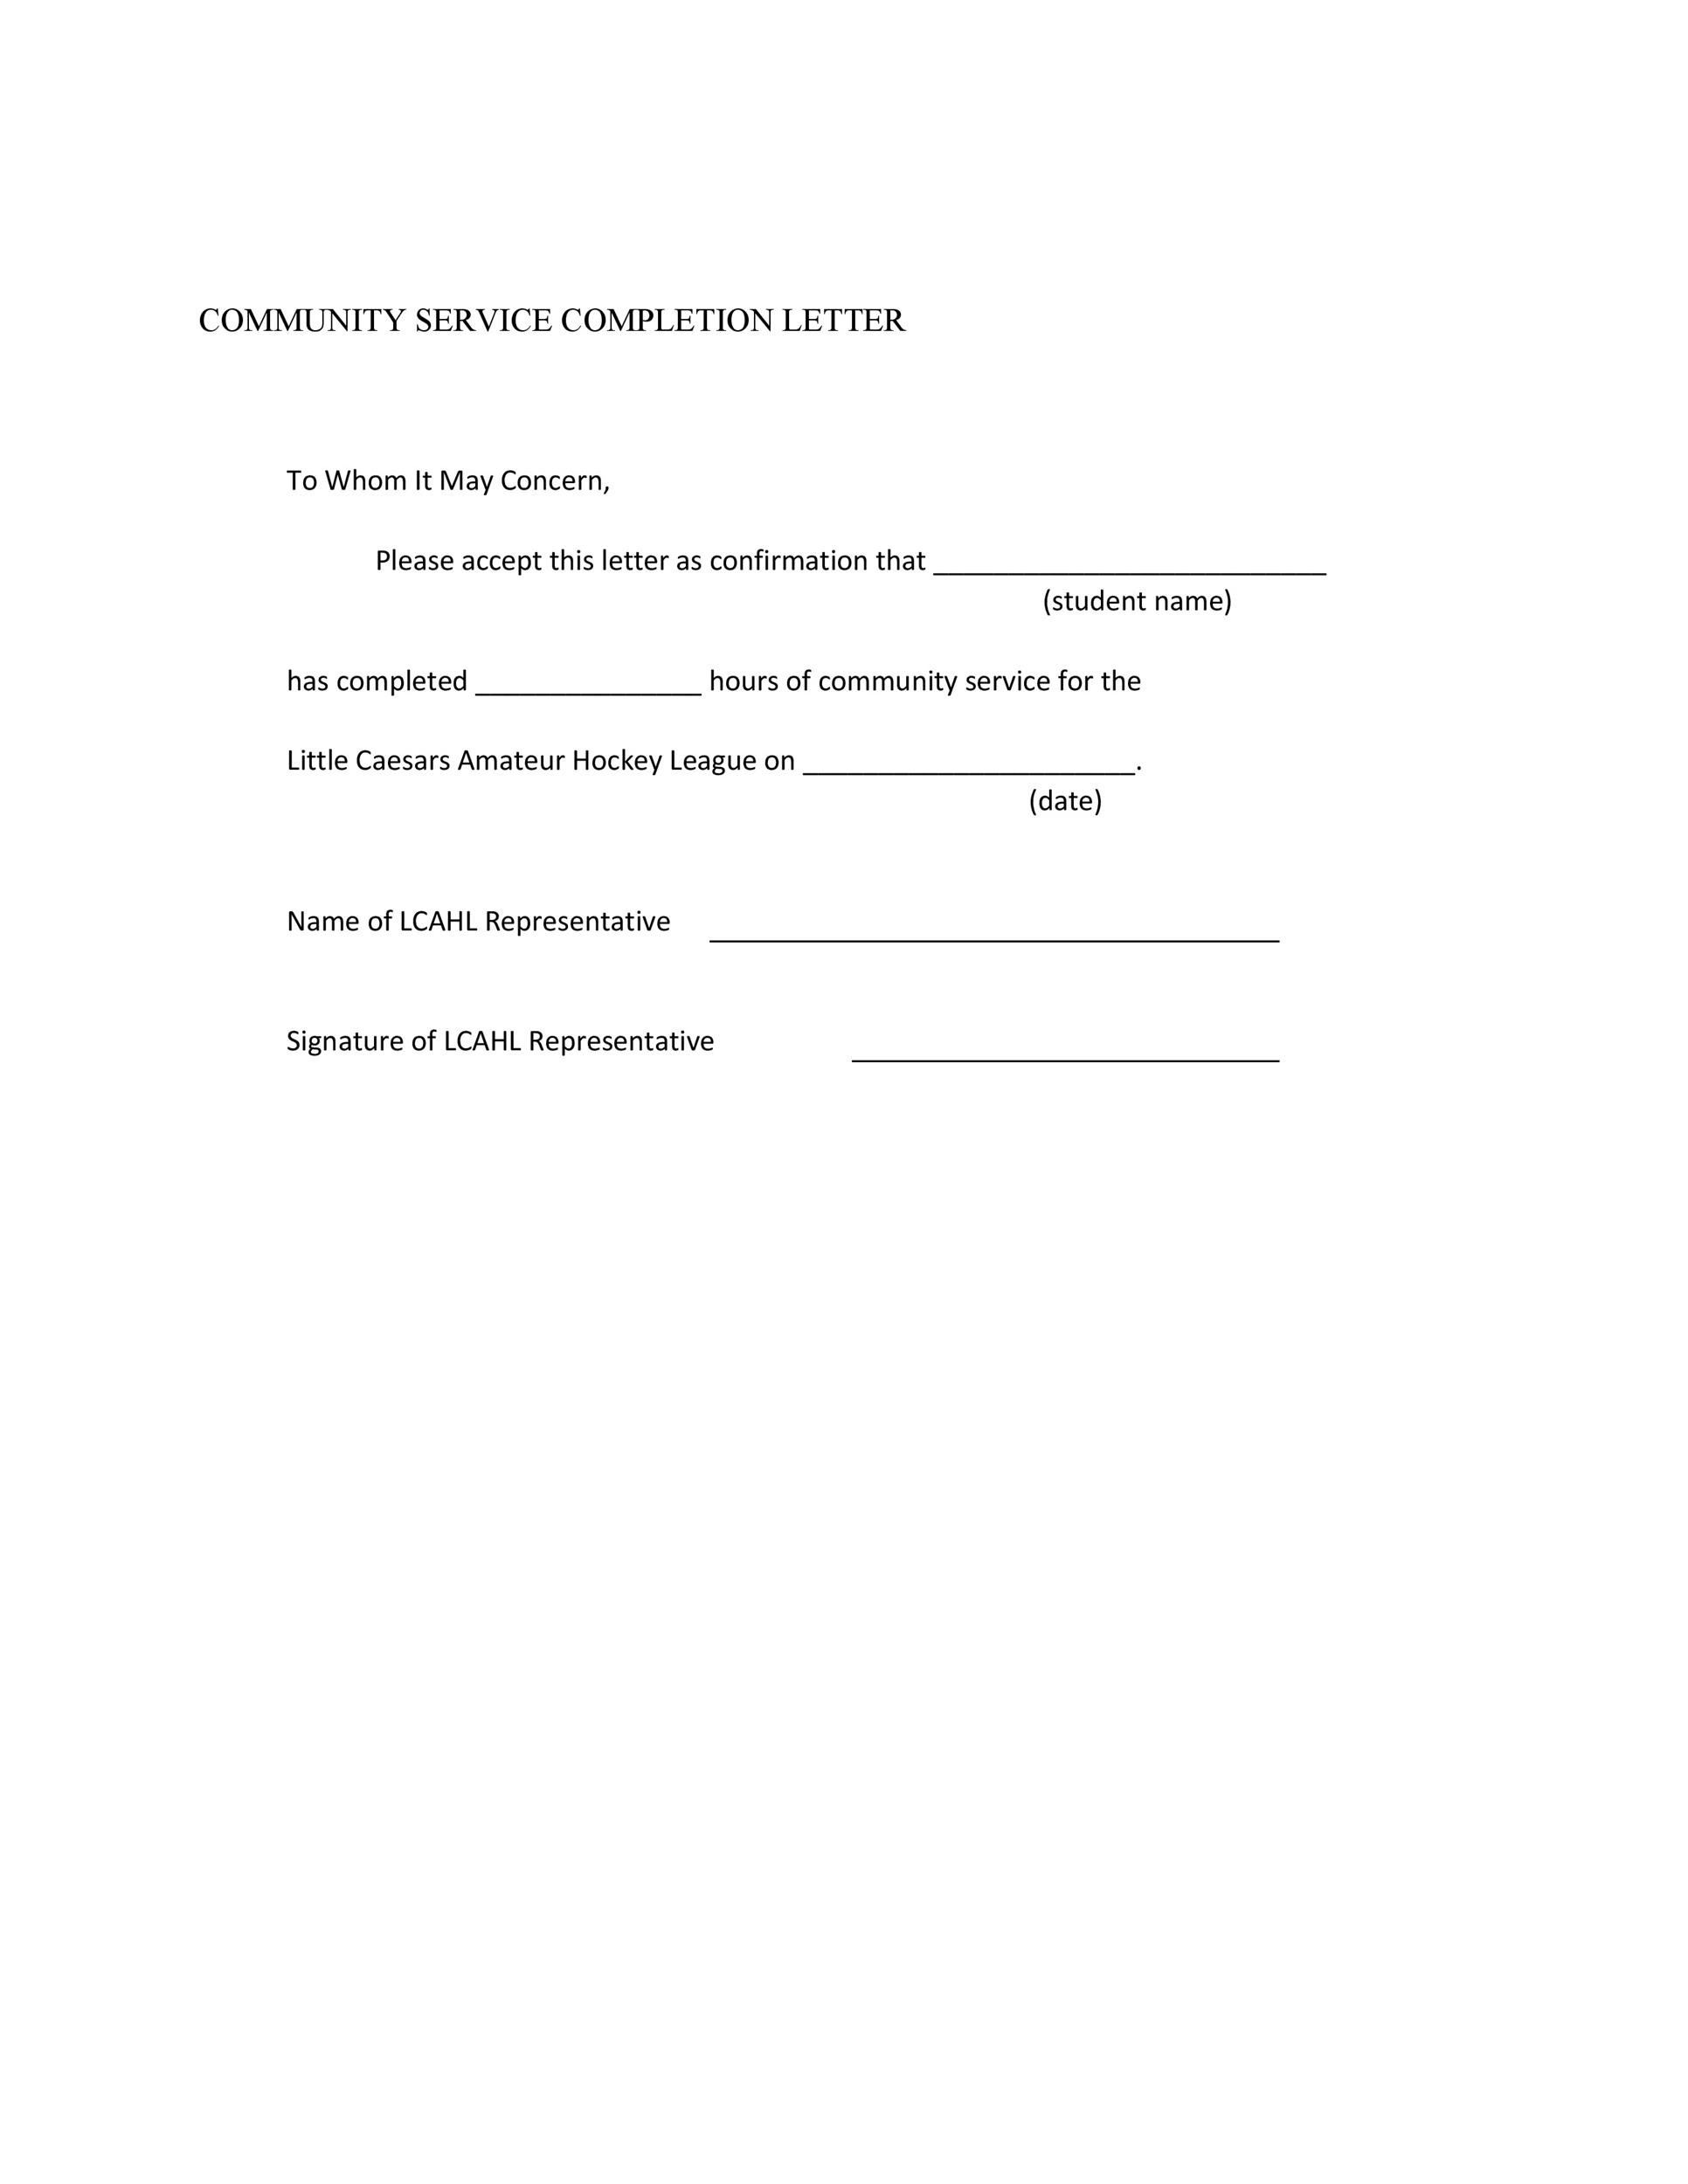 sample community service completion letter Community Service Letter - 40  Templates [Completion, Verification]